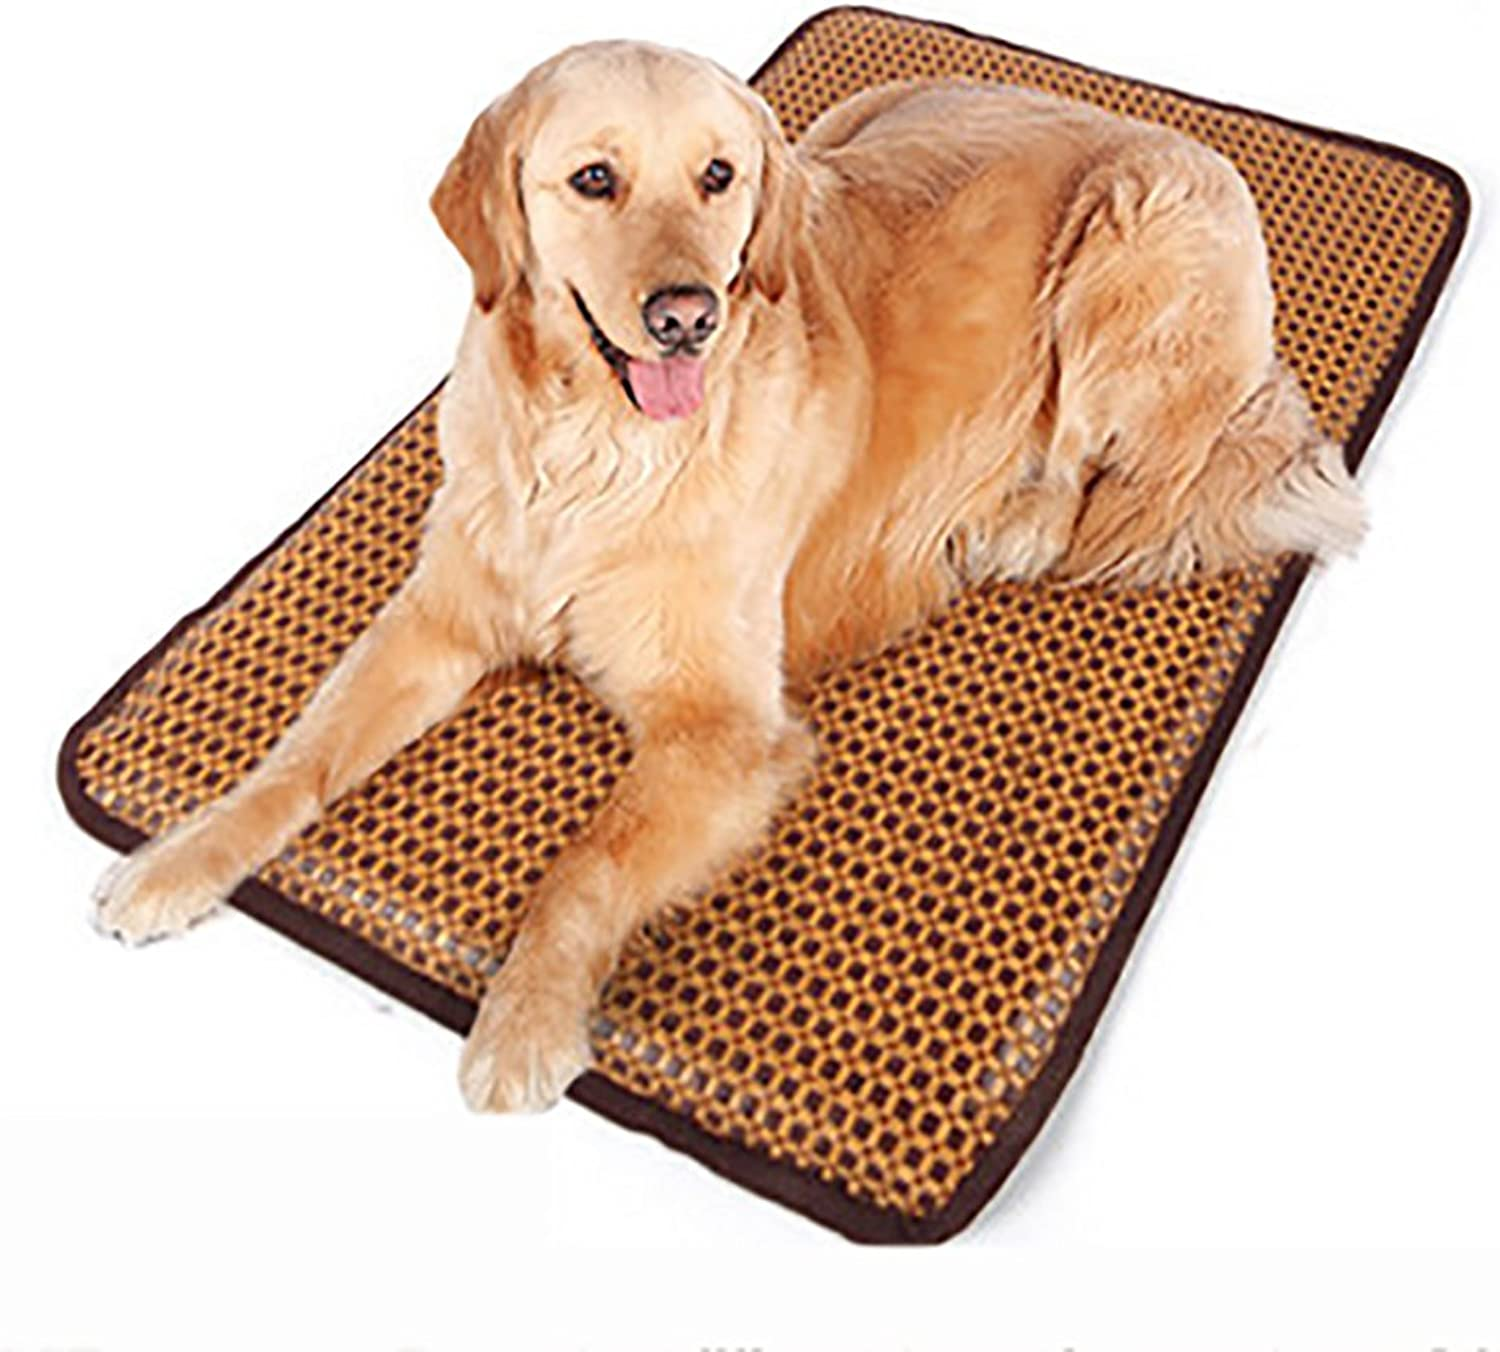 MEIQI Dog Crate Mat Summer Pet Mat Soft Nylon bluee Dog Puppy Cat Cool Ice Mat Pad Dog Bed Cooling Sleeping Kennel Bed Washable NonToxic Travel Mat